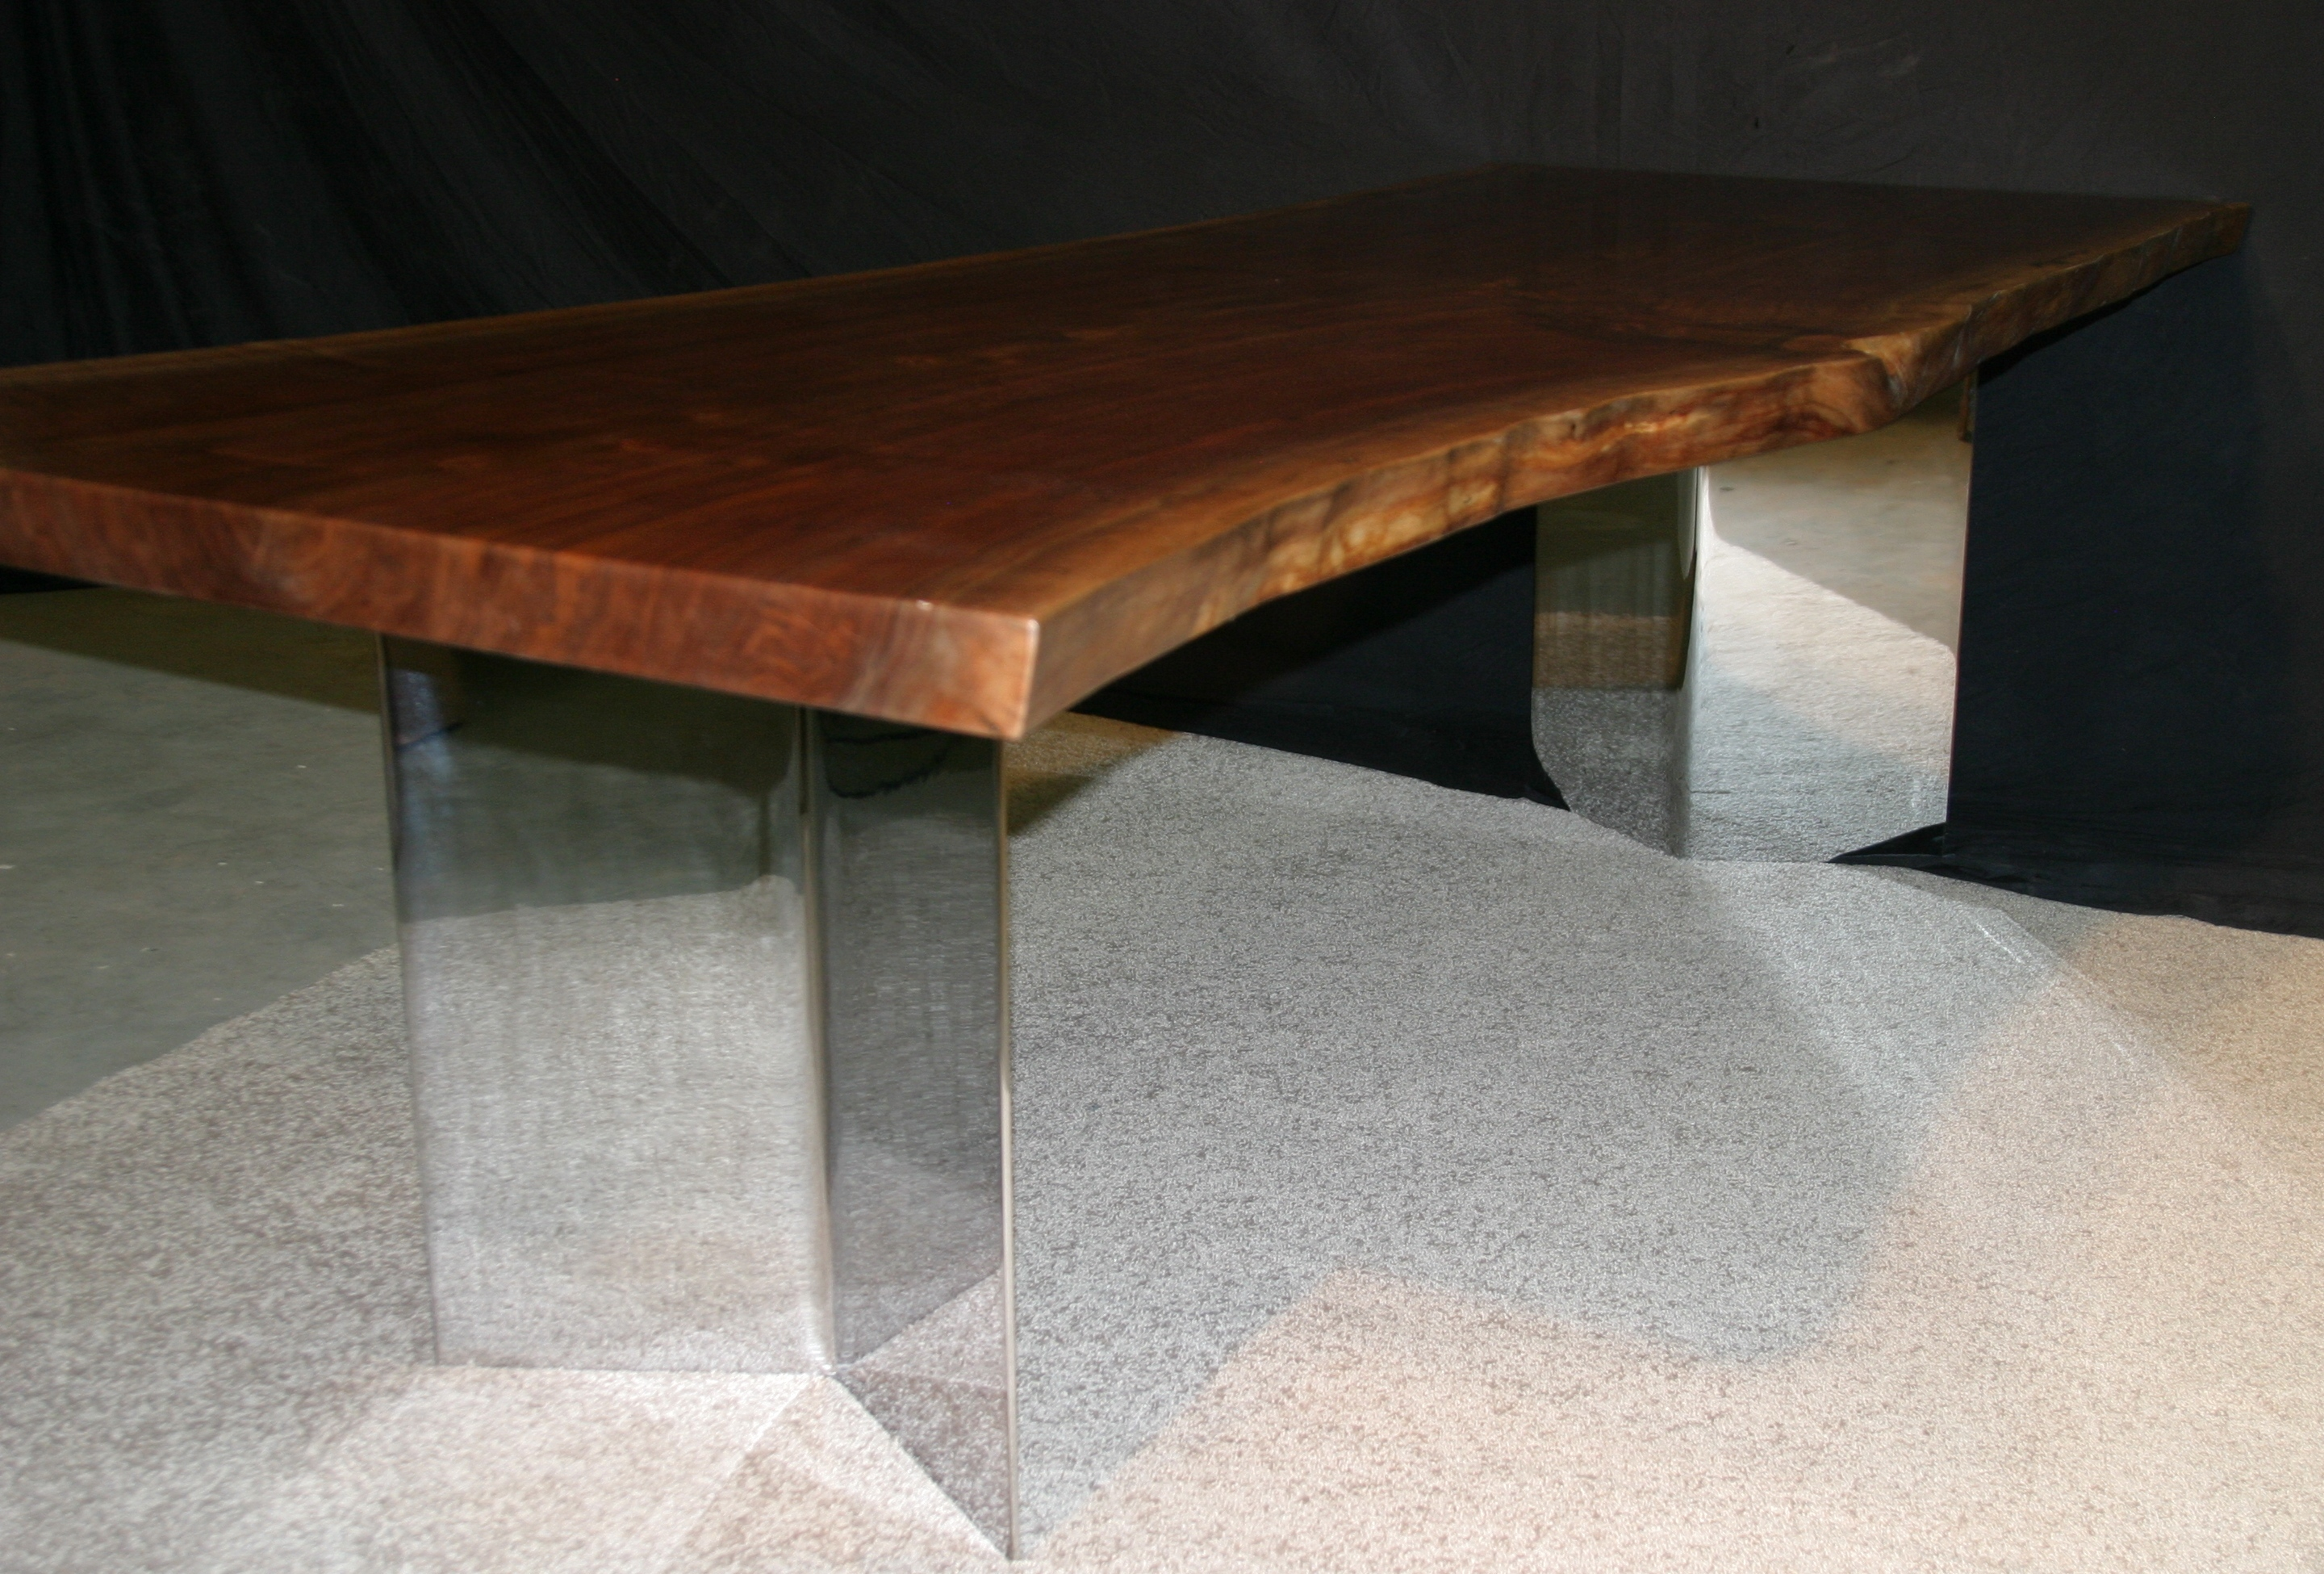 1000 images about Table legs on Pinterest Steel table  : weeds black walnut slab table w wide chrome legs 10 from www.pinterest.com size 2880 x 1950 jpeg 2062kB